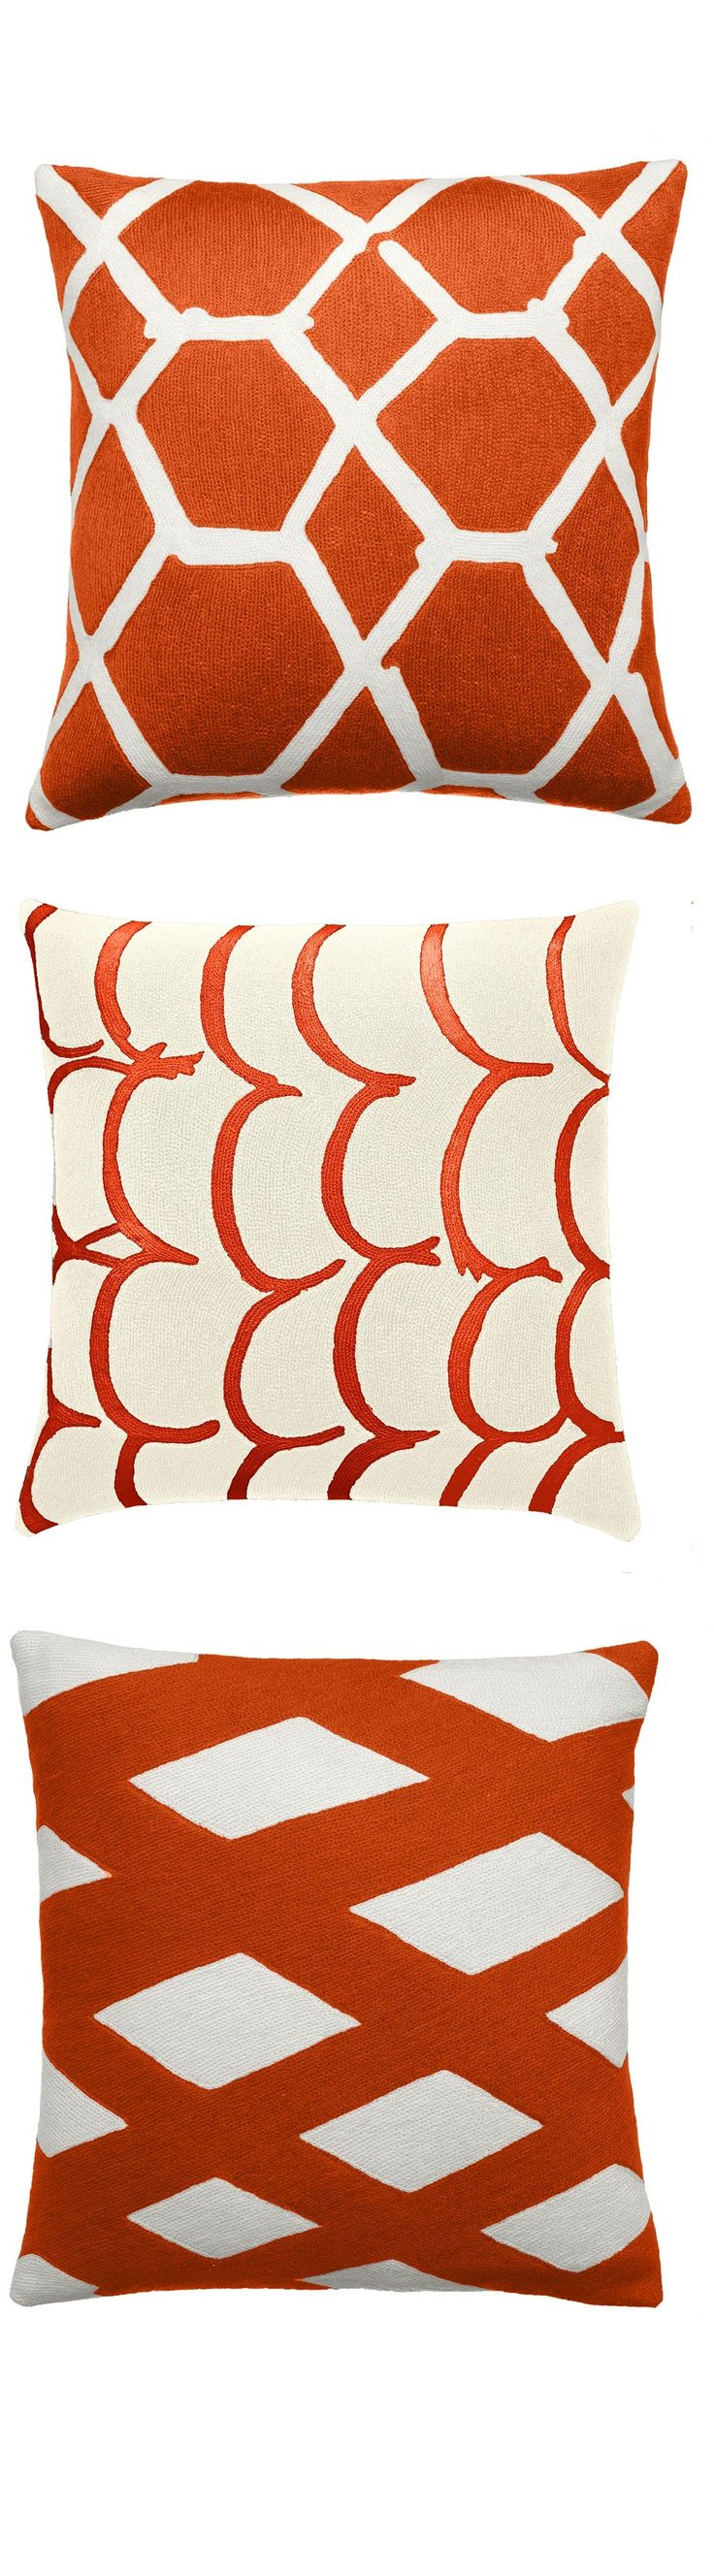 """orange pillows"" ""orange throw pillows"" ""orange modern pillows"" By InStyle-Decor.com Hollywood, orange couch pillow, orange couch pillows, orange pillow cases, orange pillows shams, orange pillow covers, orange decorative pillows, decorative orange pillows, modern orange pillow, modern orange pillows, contemporary orange pillow, contemporary orange pillows, decorative pillows, decorative pillows for sofa, decorative pillows for bed, throw pillows, throw pillows for sofa, pillow ideas, from…"